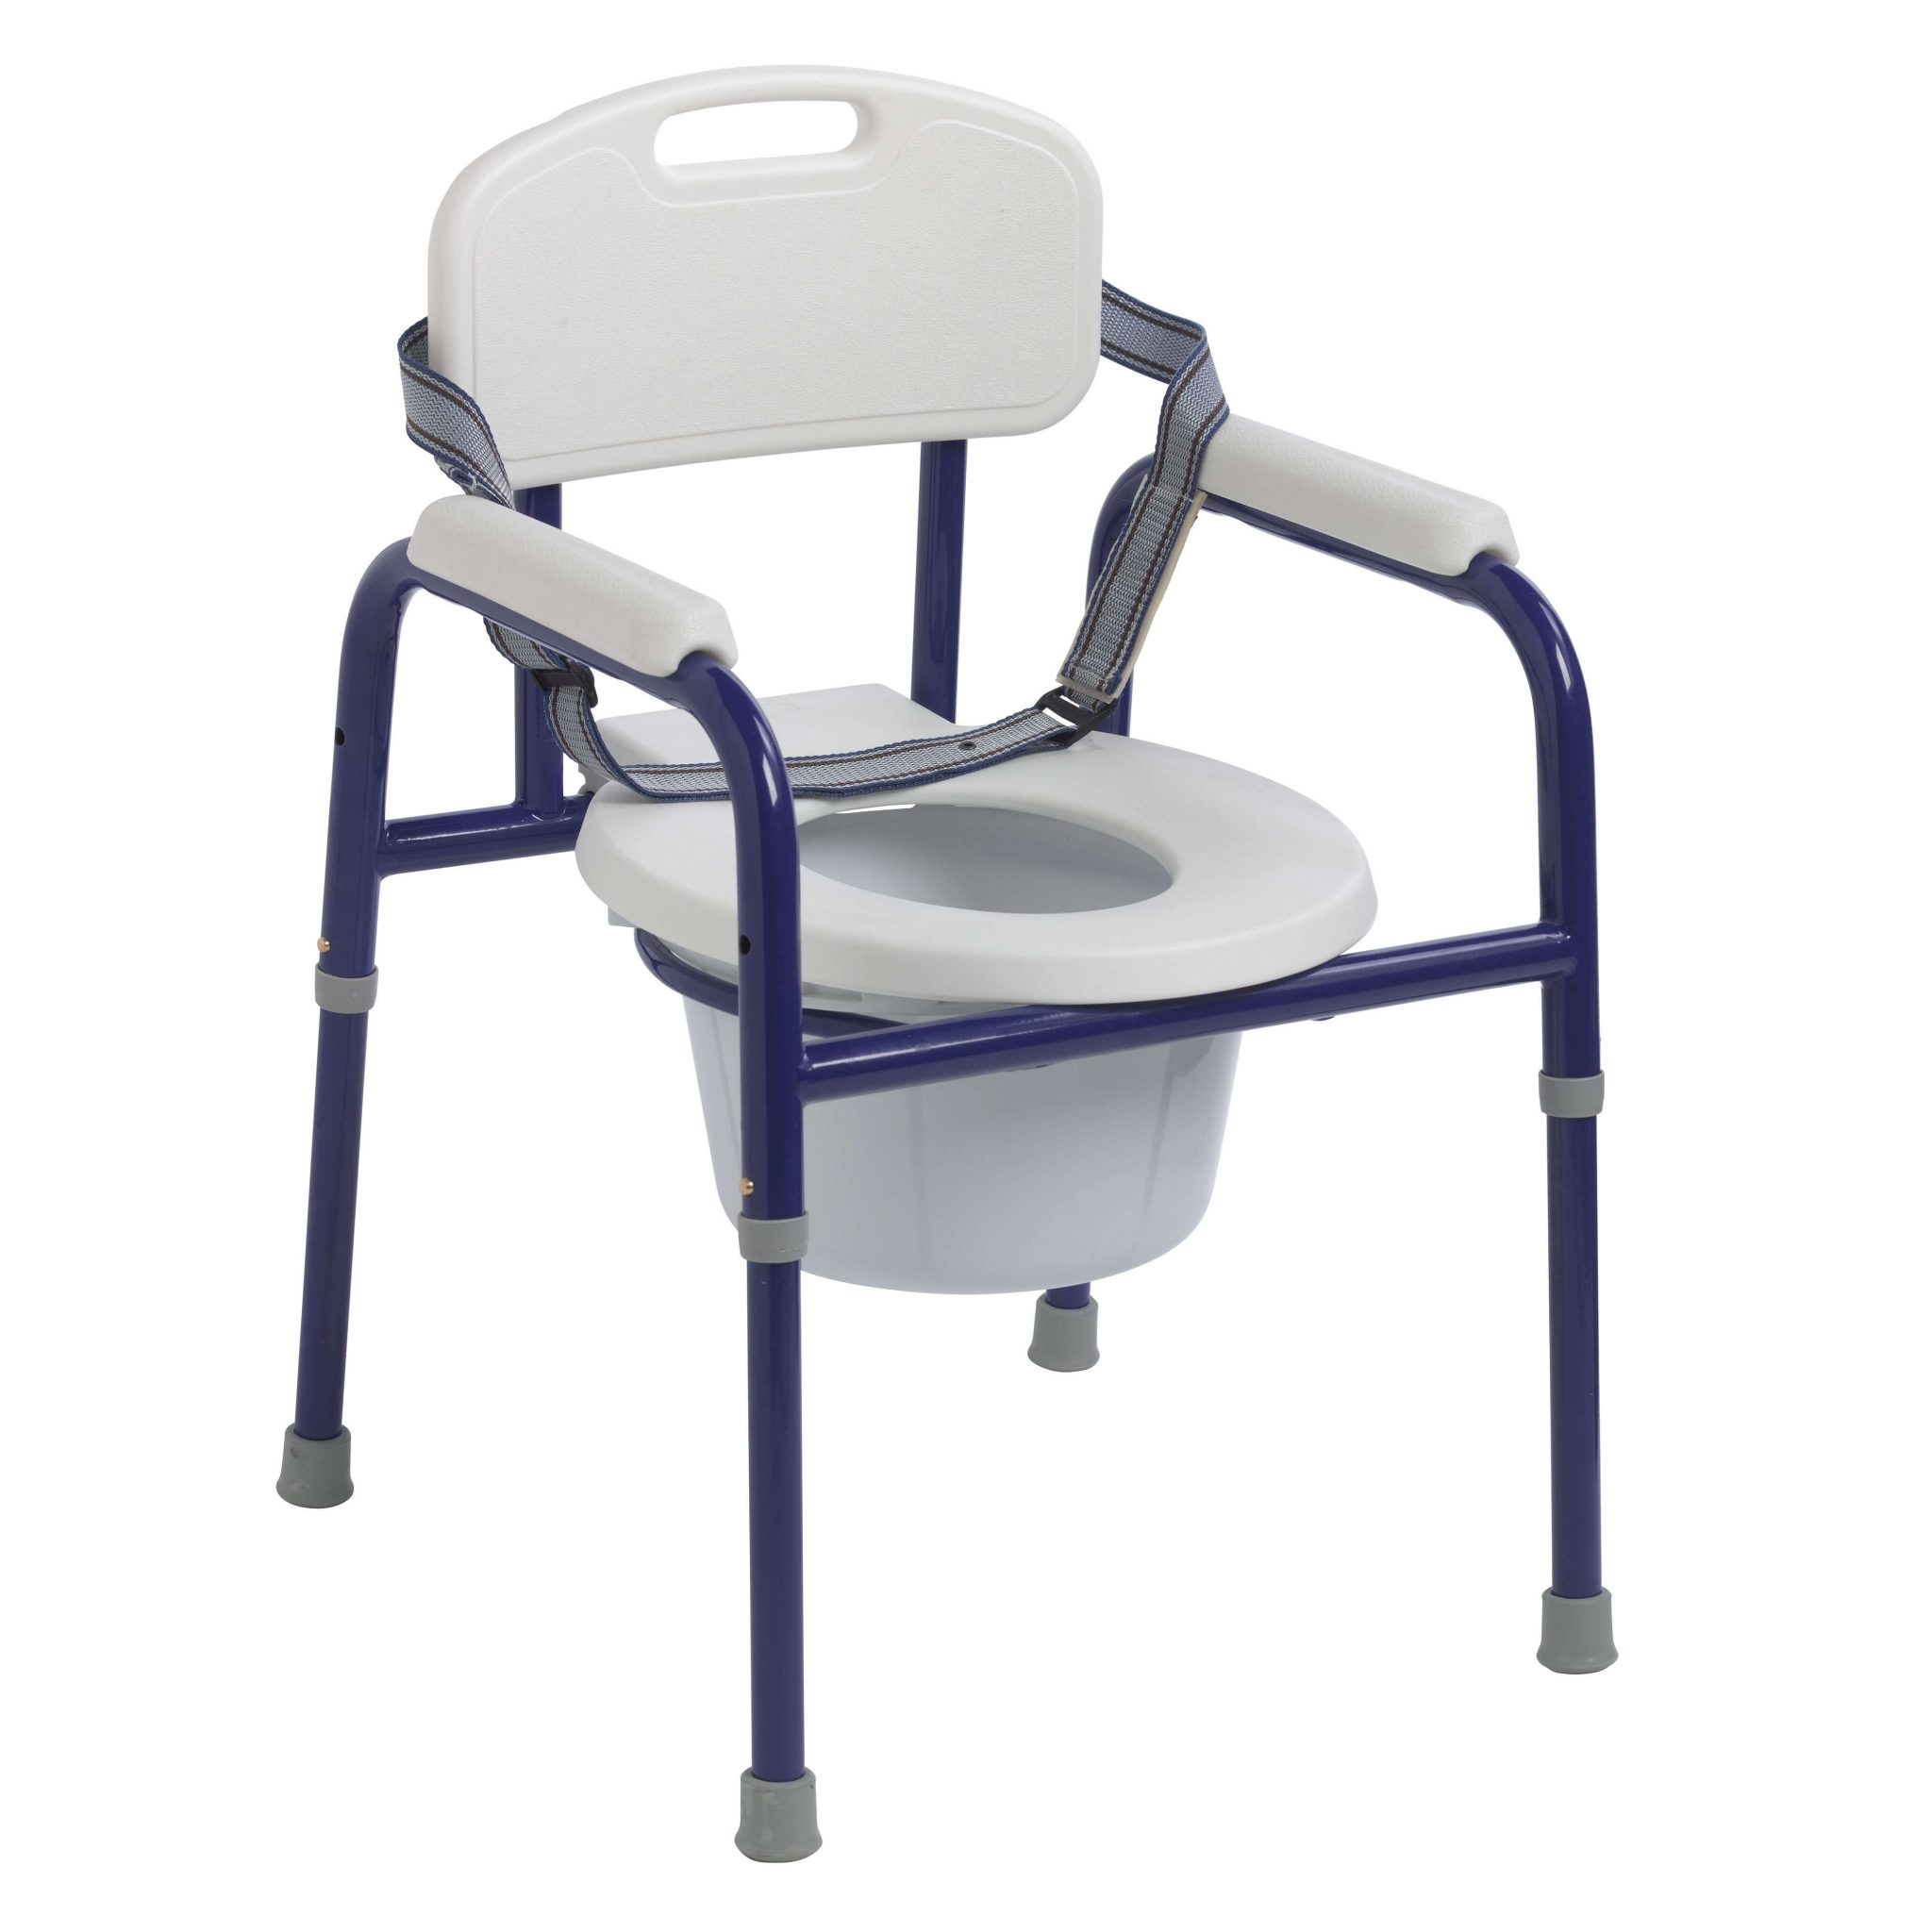 does medicare cover shower chairs best baby rocker chair 2018 pinniped pediatric commode blue washington dc